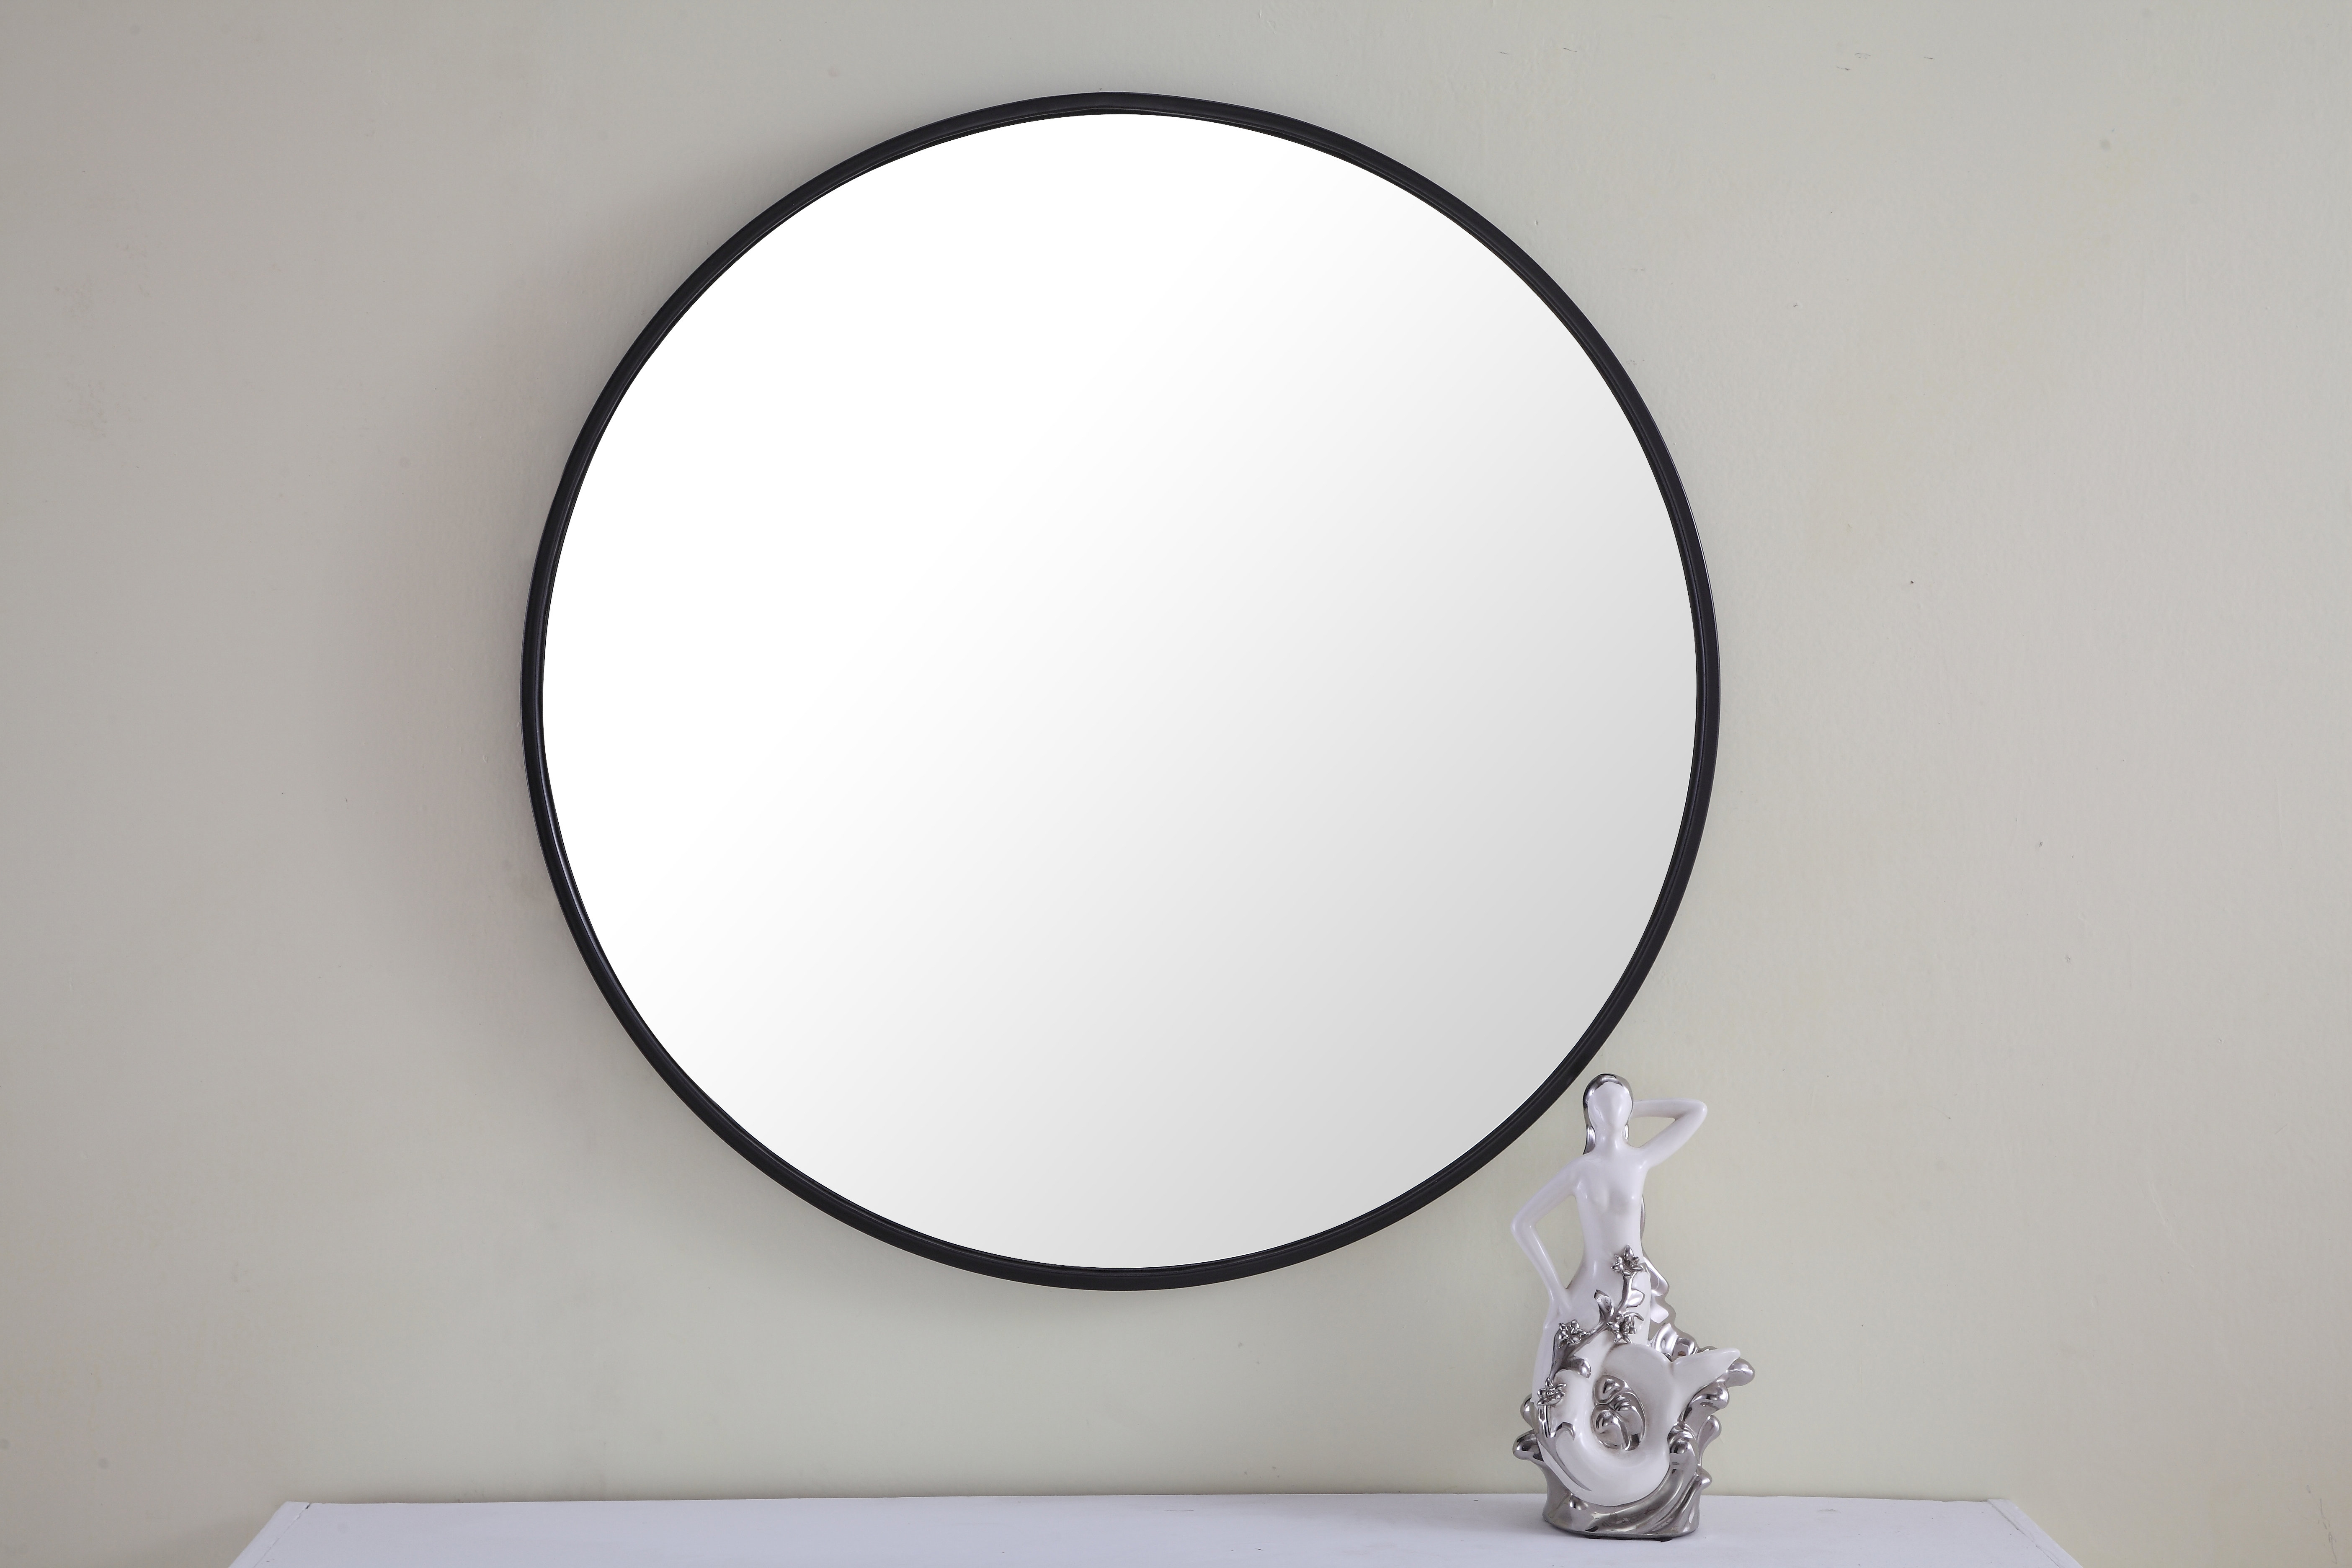 Modern & Contemporary 42 Inch Round Mirror | Allmodern Inside Round Eclectic Accent Mirrors (Image 9 of 20)